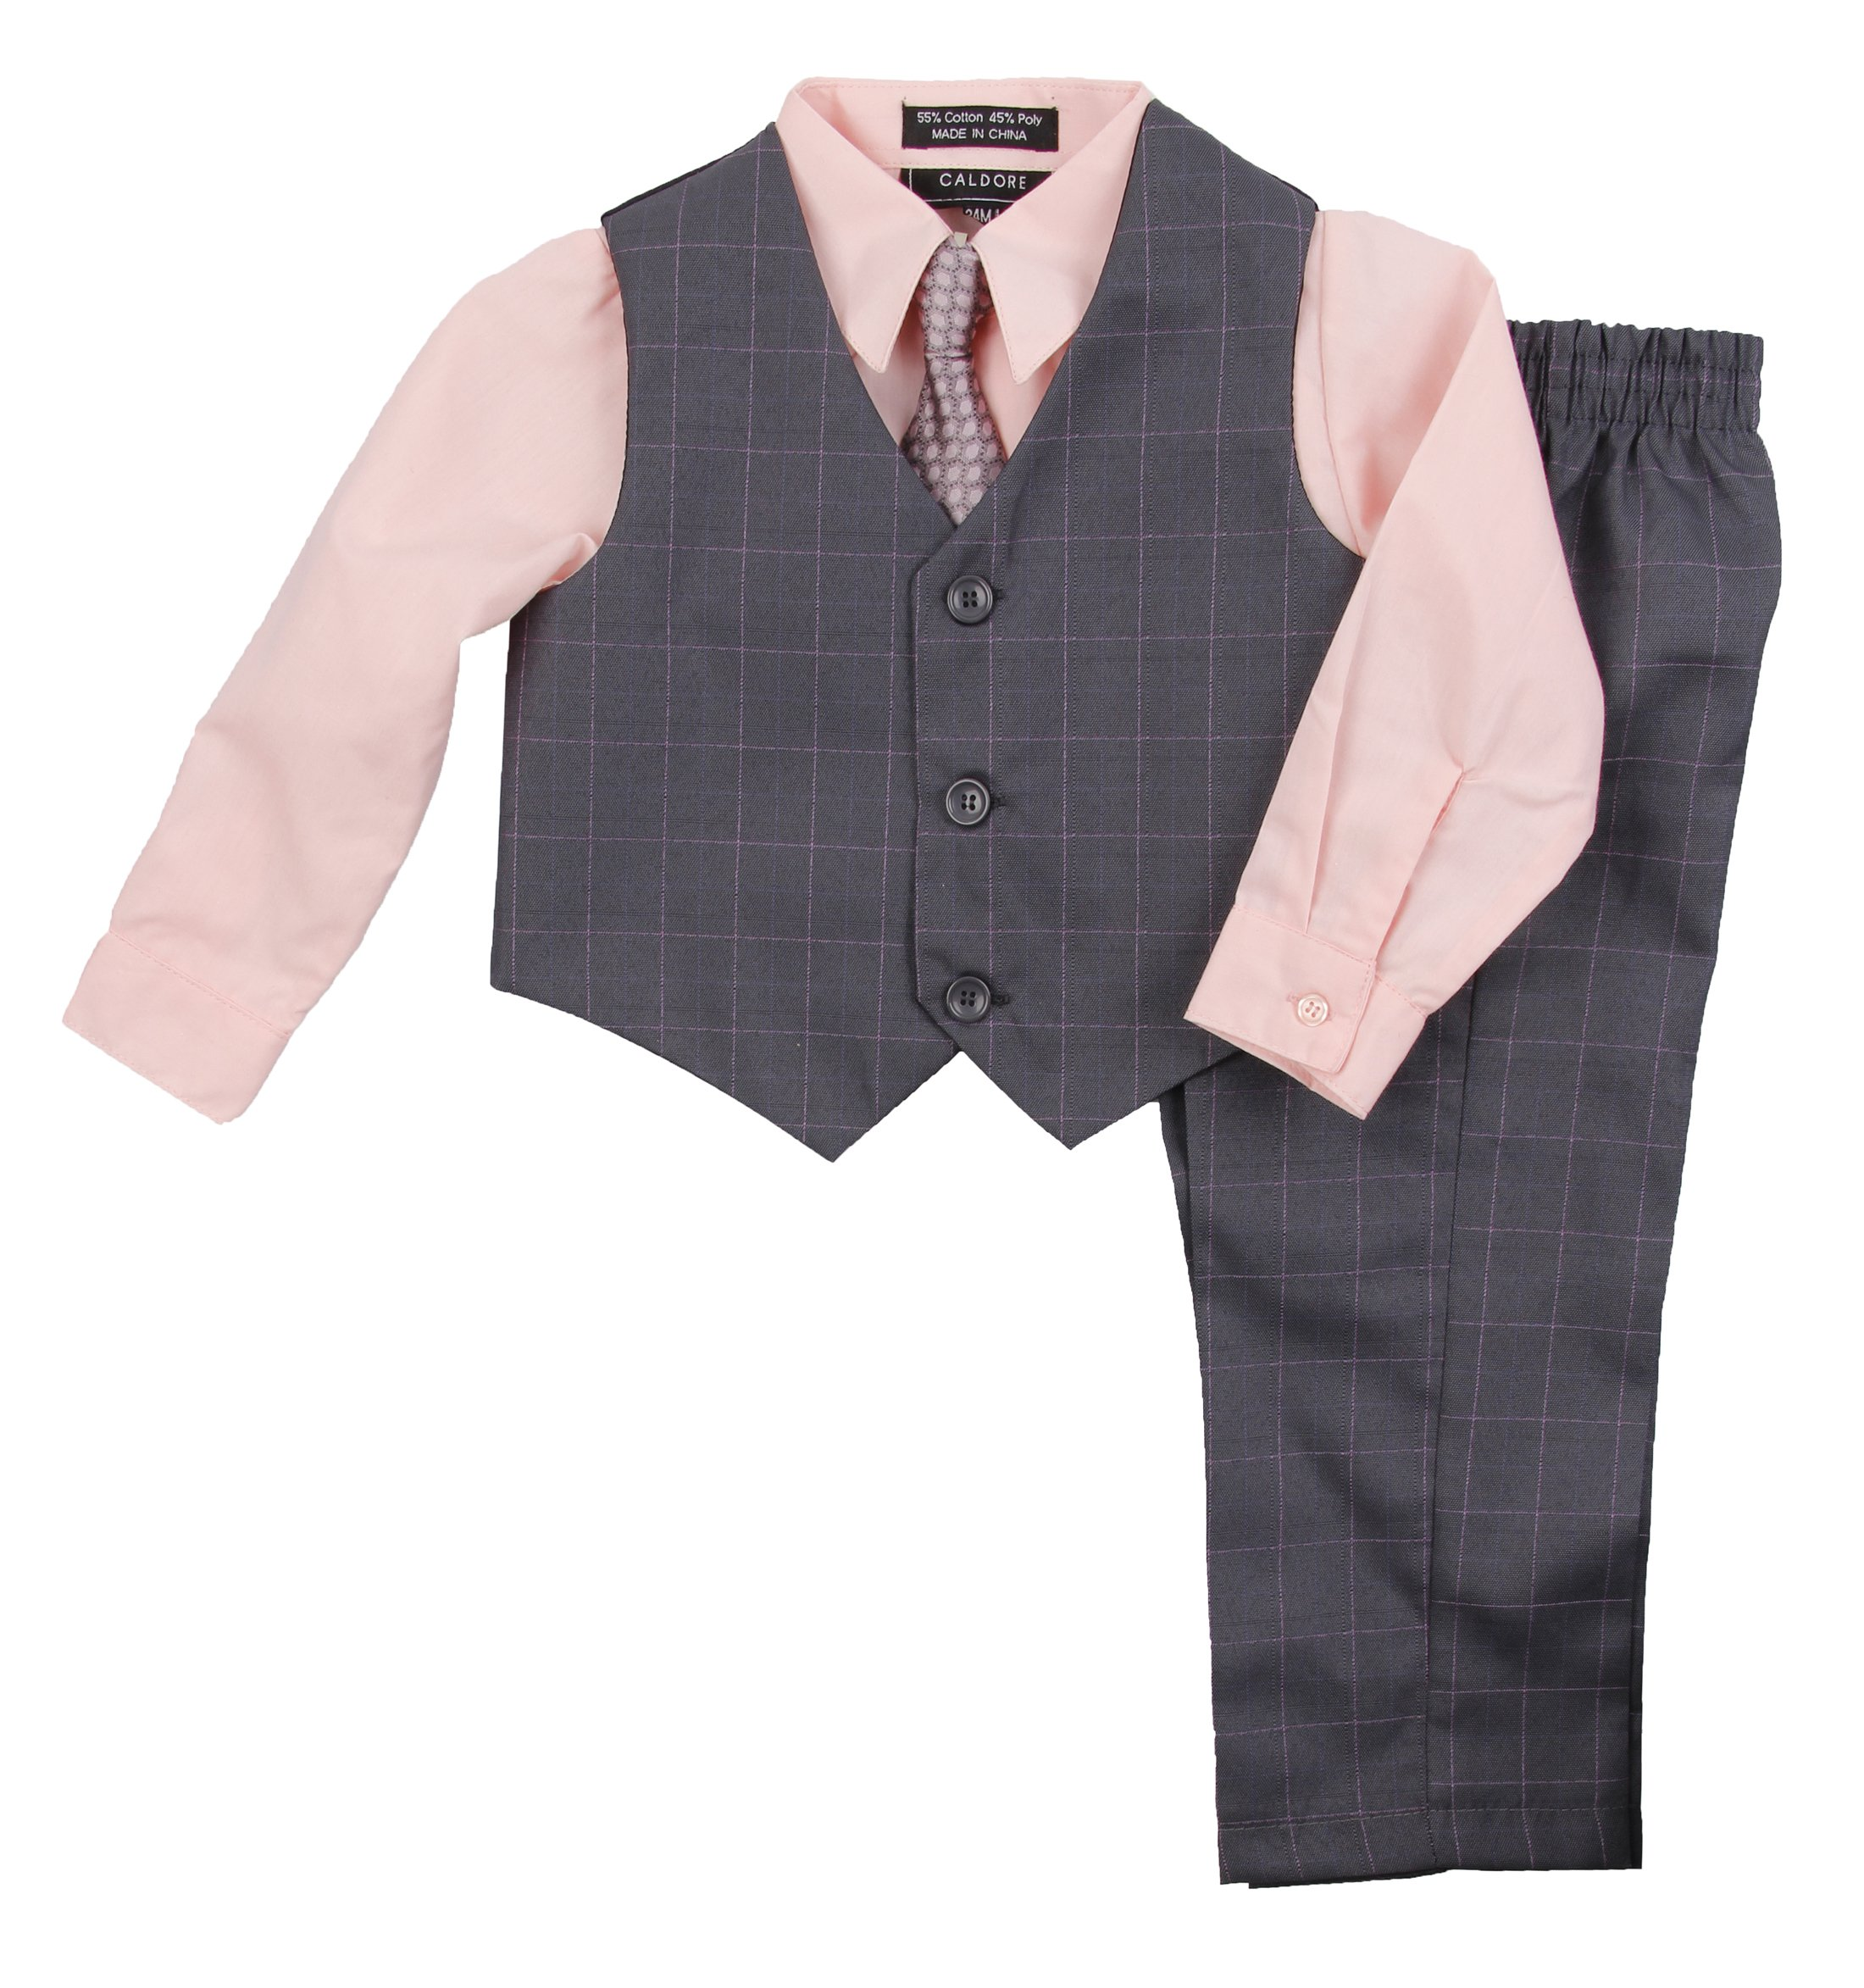 Boys Formal Suit Set - Vest Dress Shirt Pants and Matching Tie Dressy Wear Outfit by Caldore (2T, Peach)